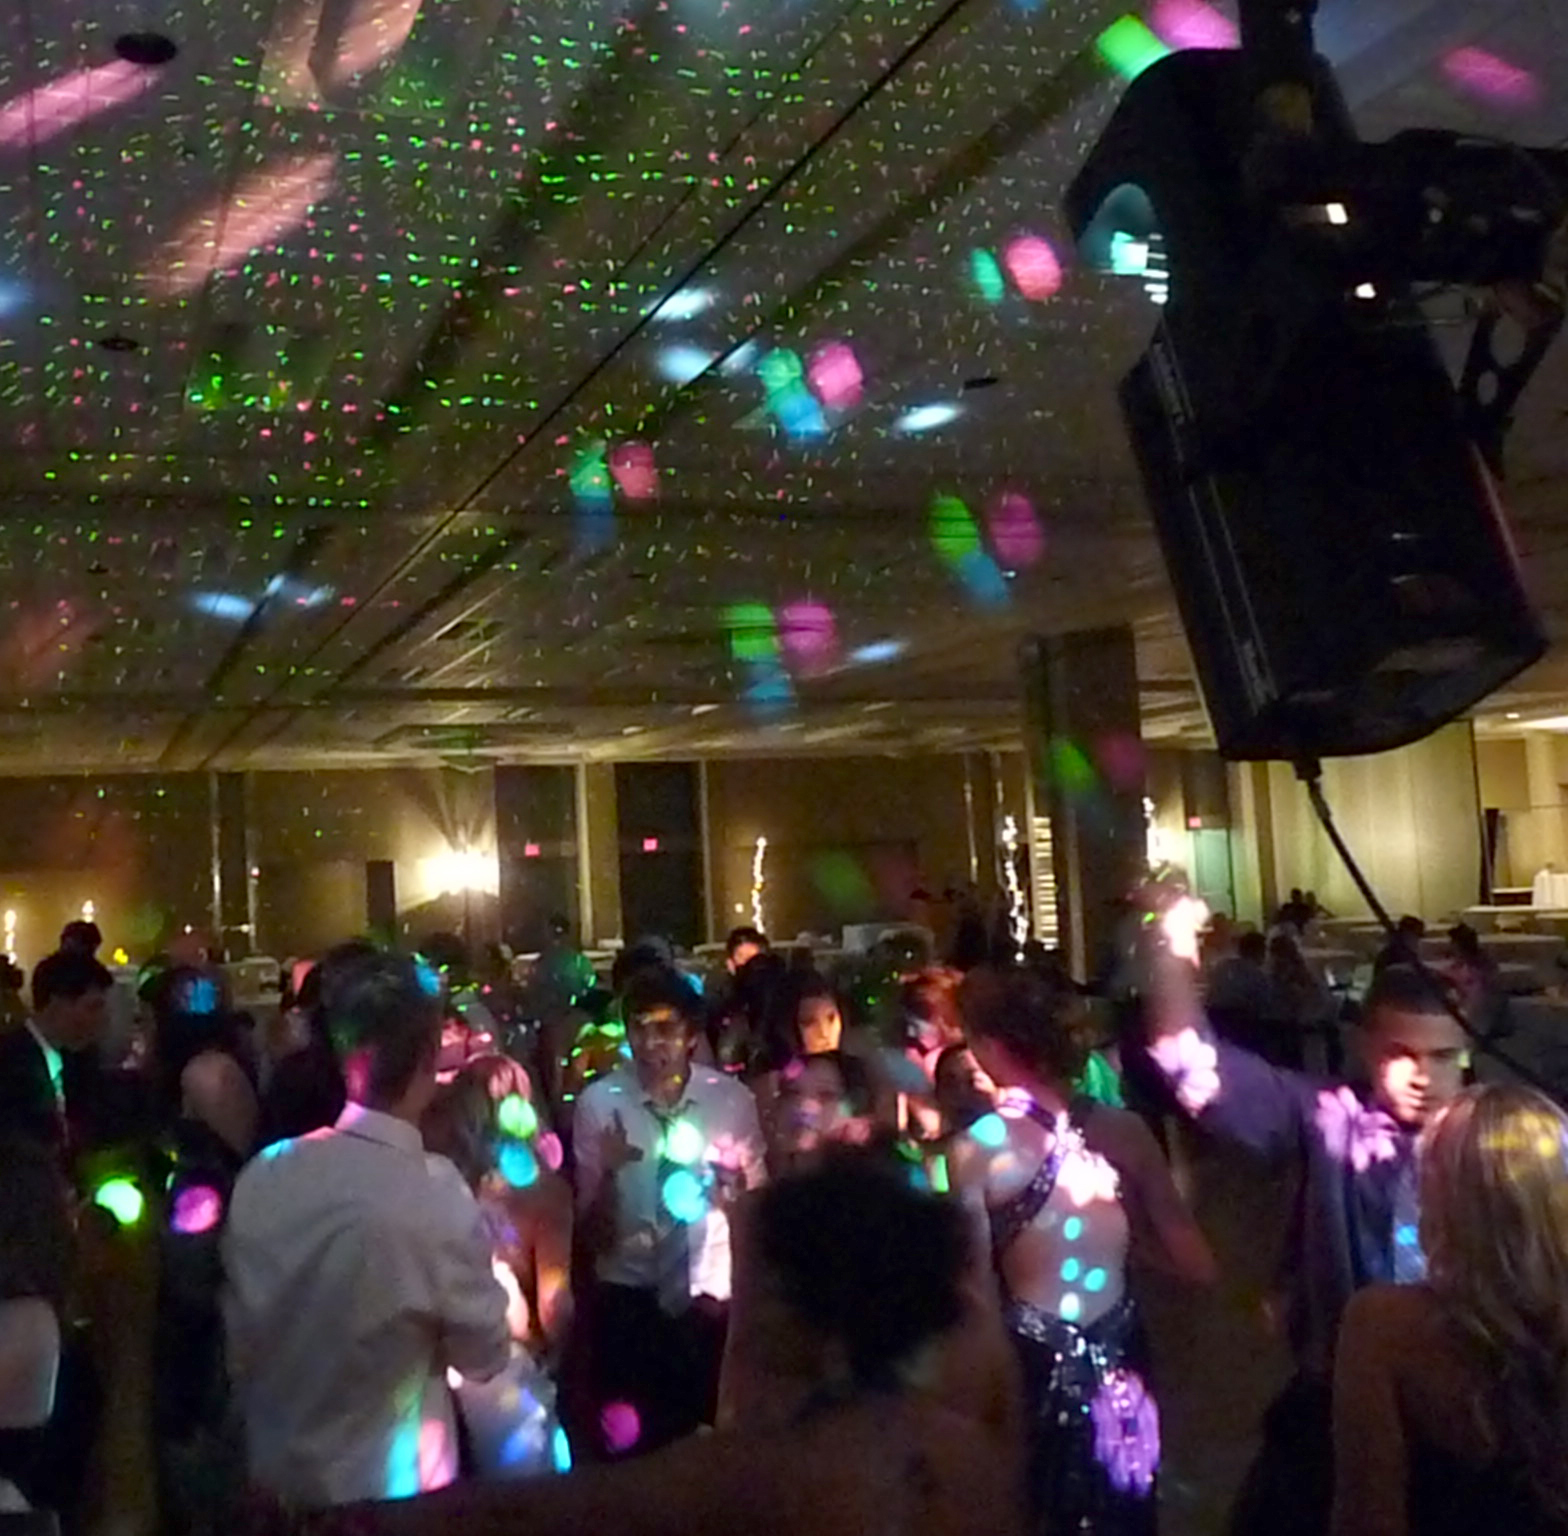 Ceiling and dance floor lighting